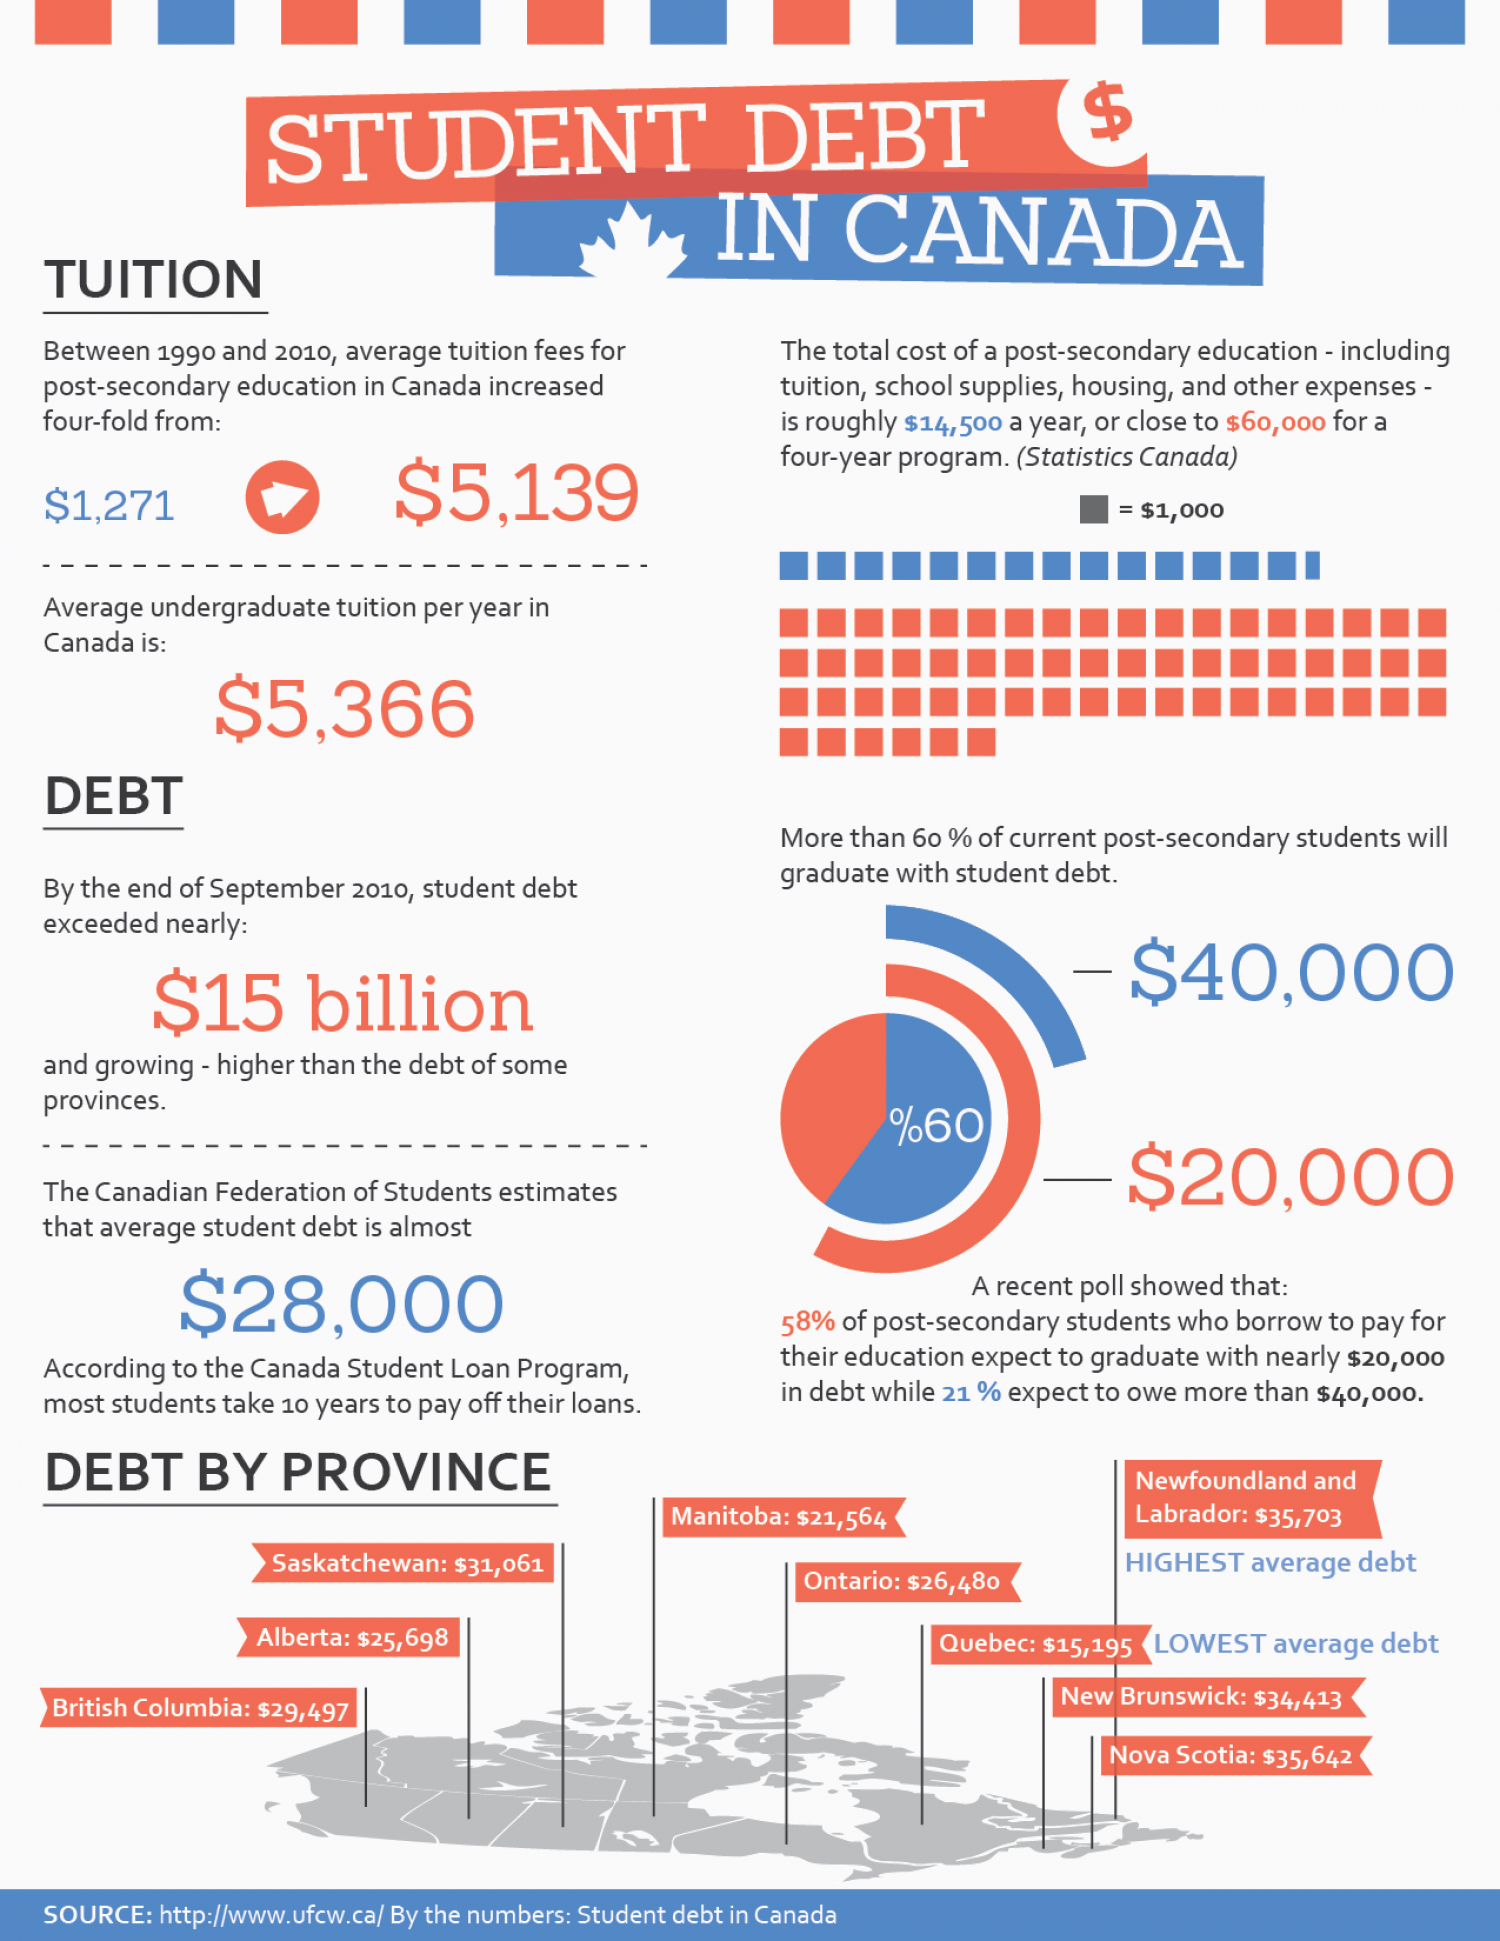 Student debt in Canada Infographic